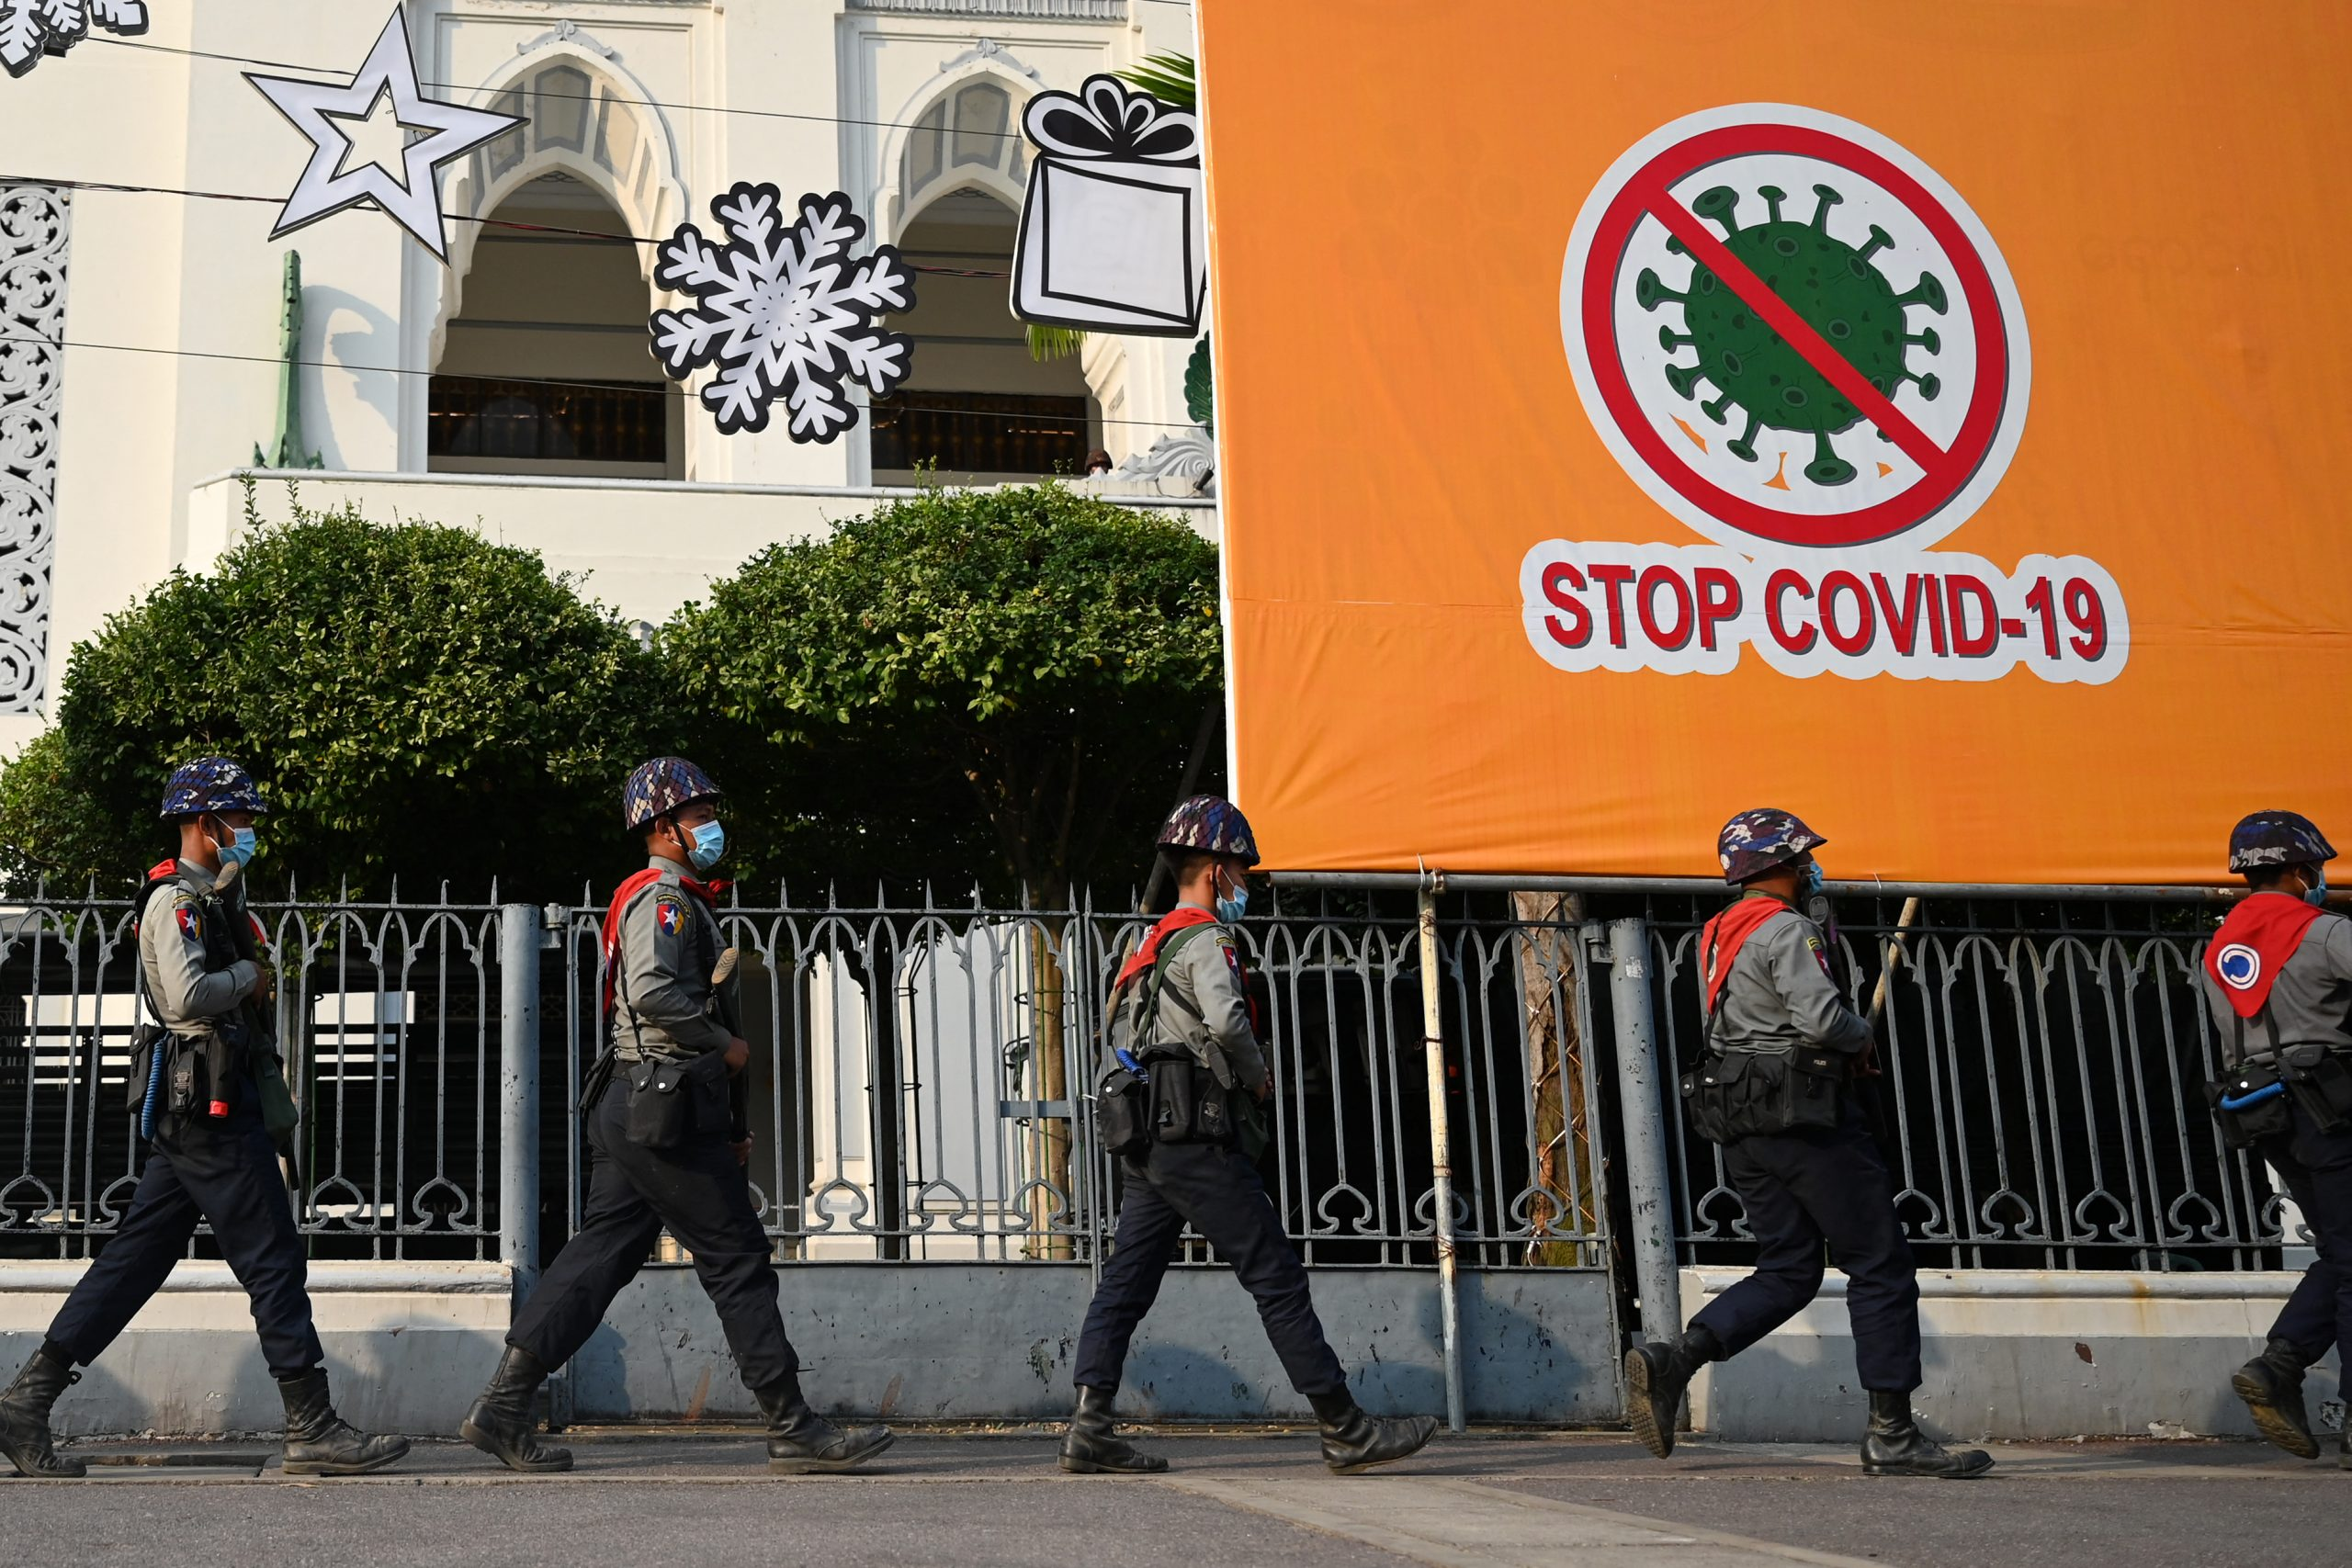 Police march past a billboard related to stopping the spread of COVID-19 as protesters gather for a demonstration against the military coup in Yangon on February 6. (AFP)